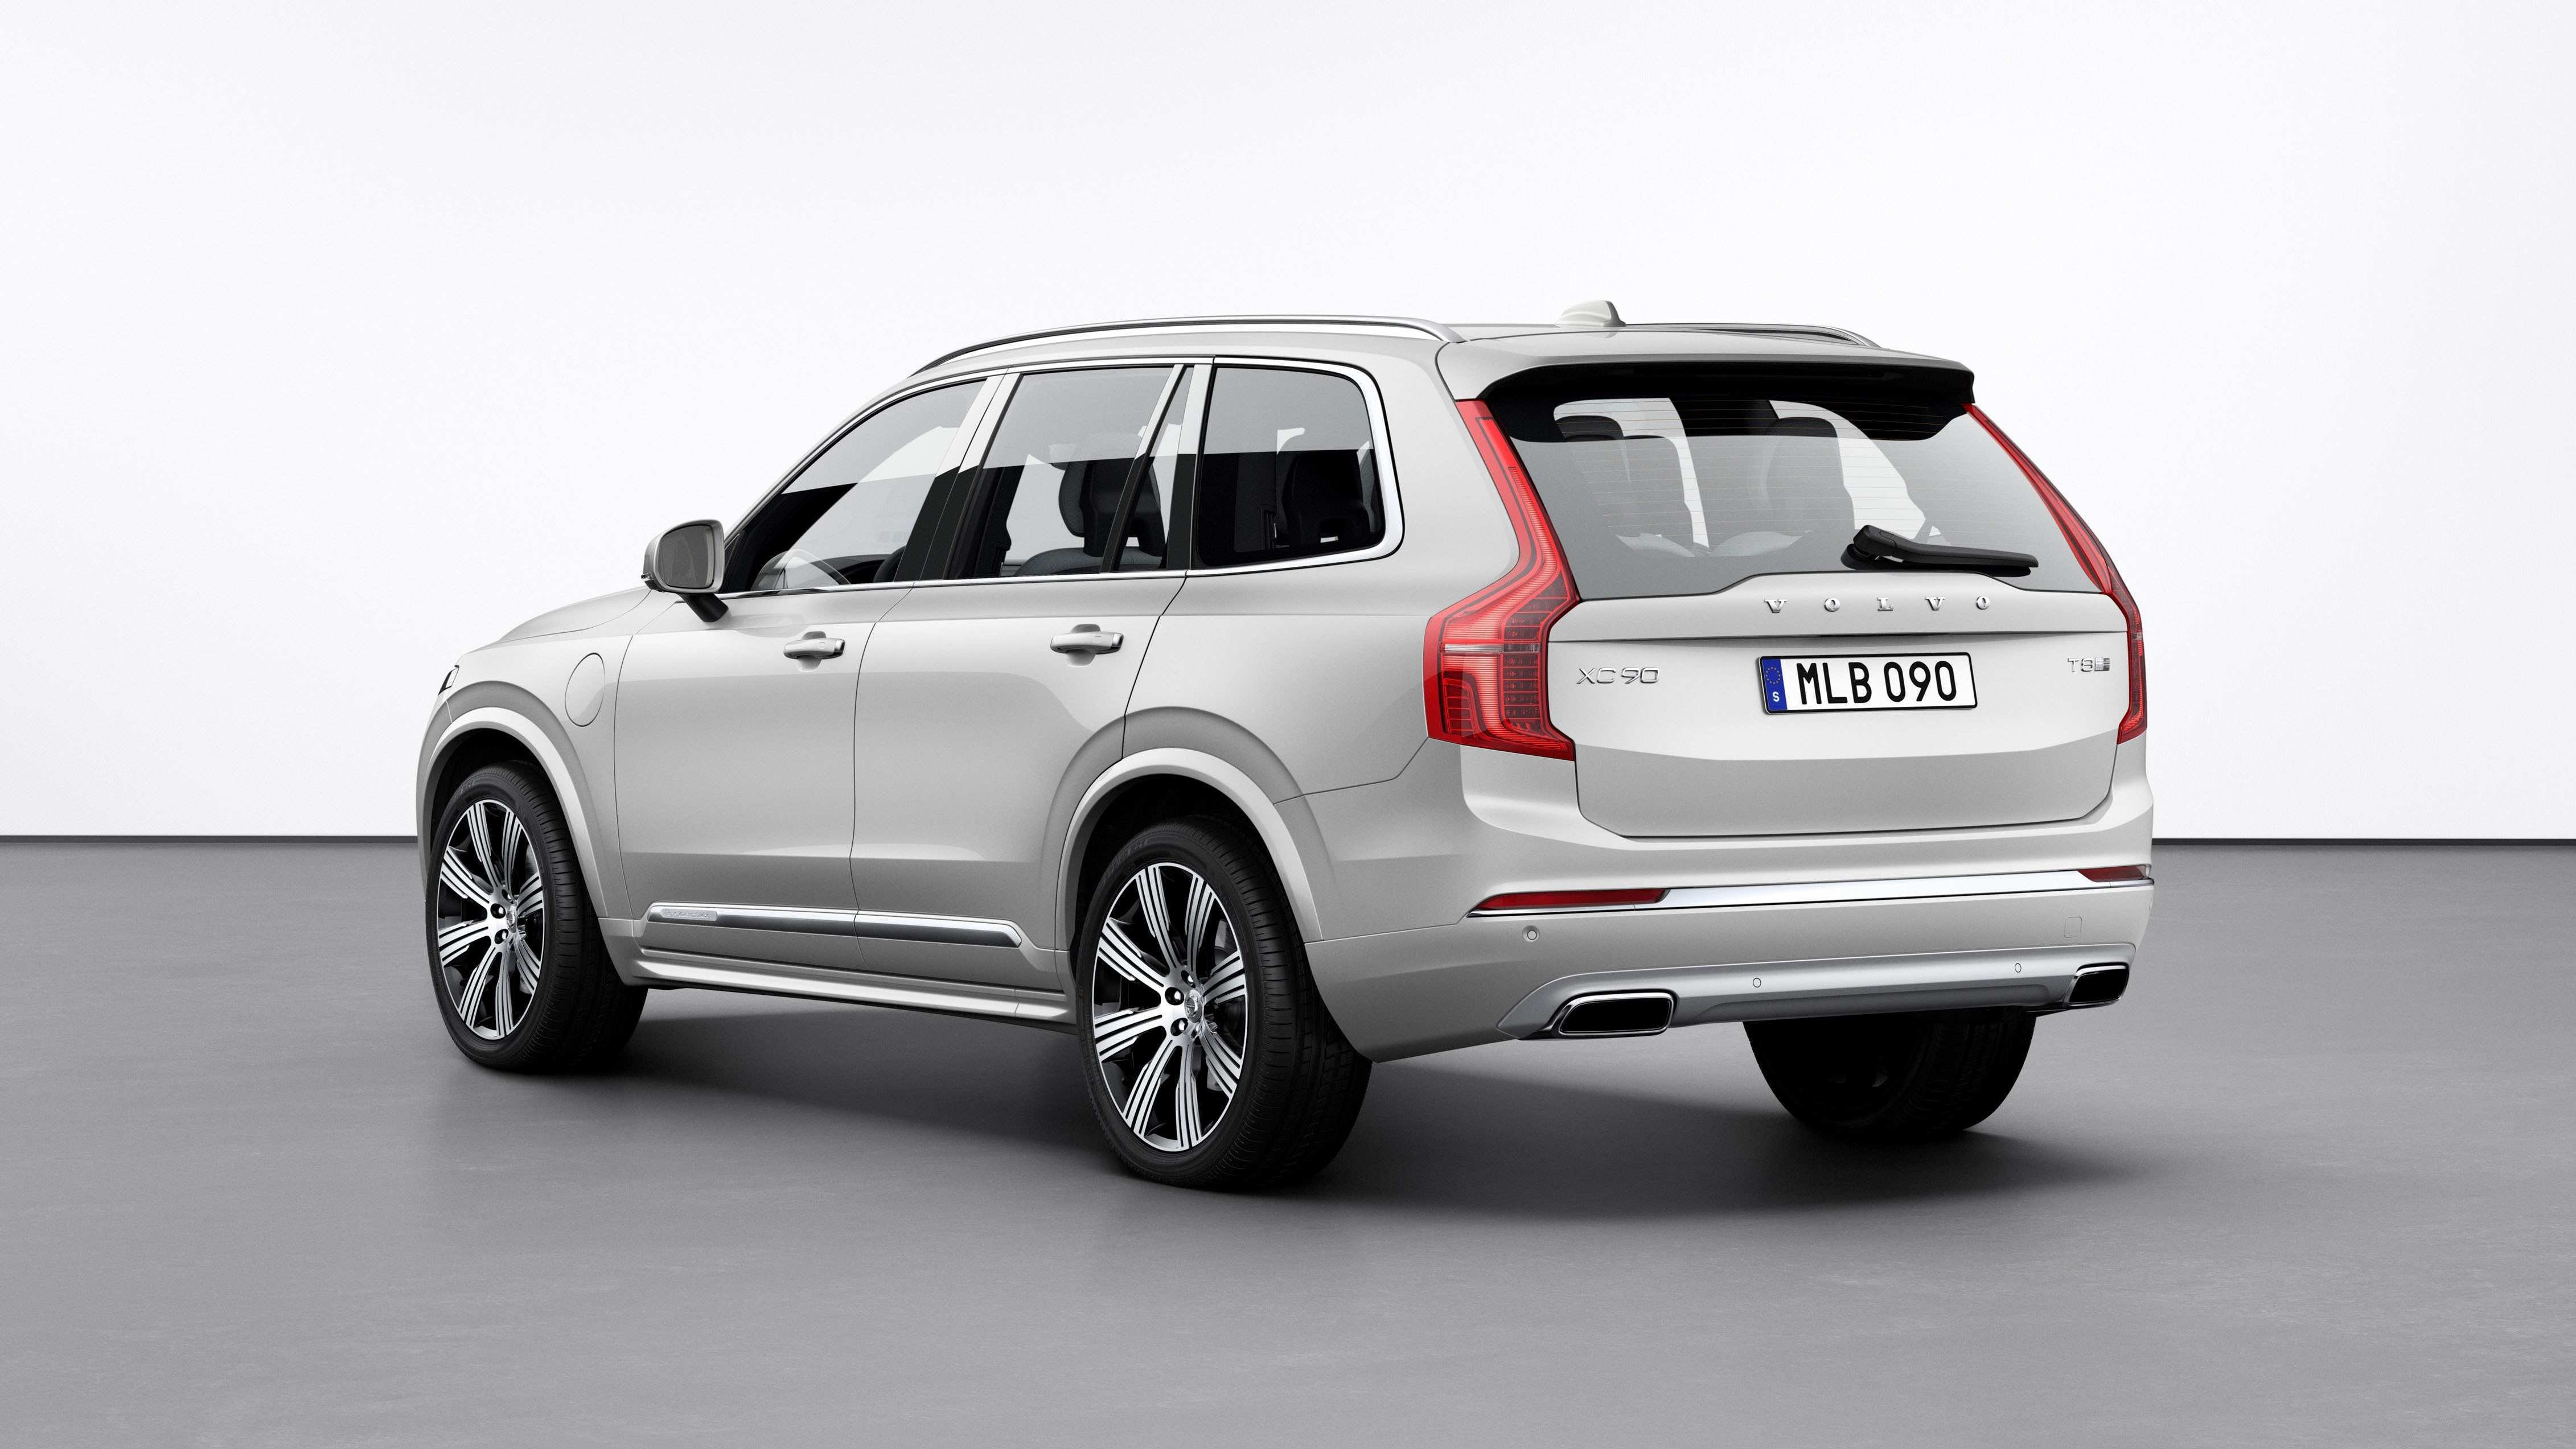 28 Gallery of Difference Between 2019 And 2020 Volvo Xc90 Overview for Difference Between 2019 And 2020 Volvo Xc90